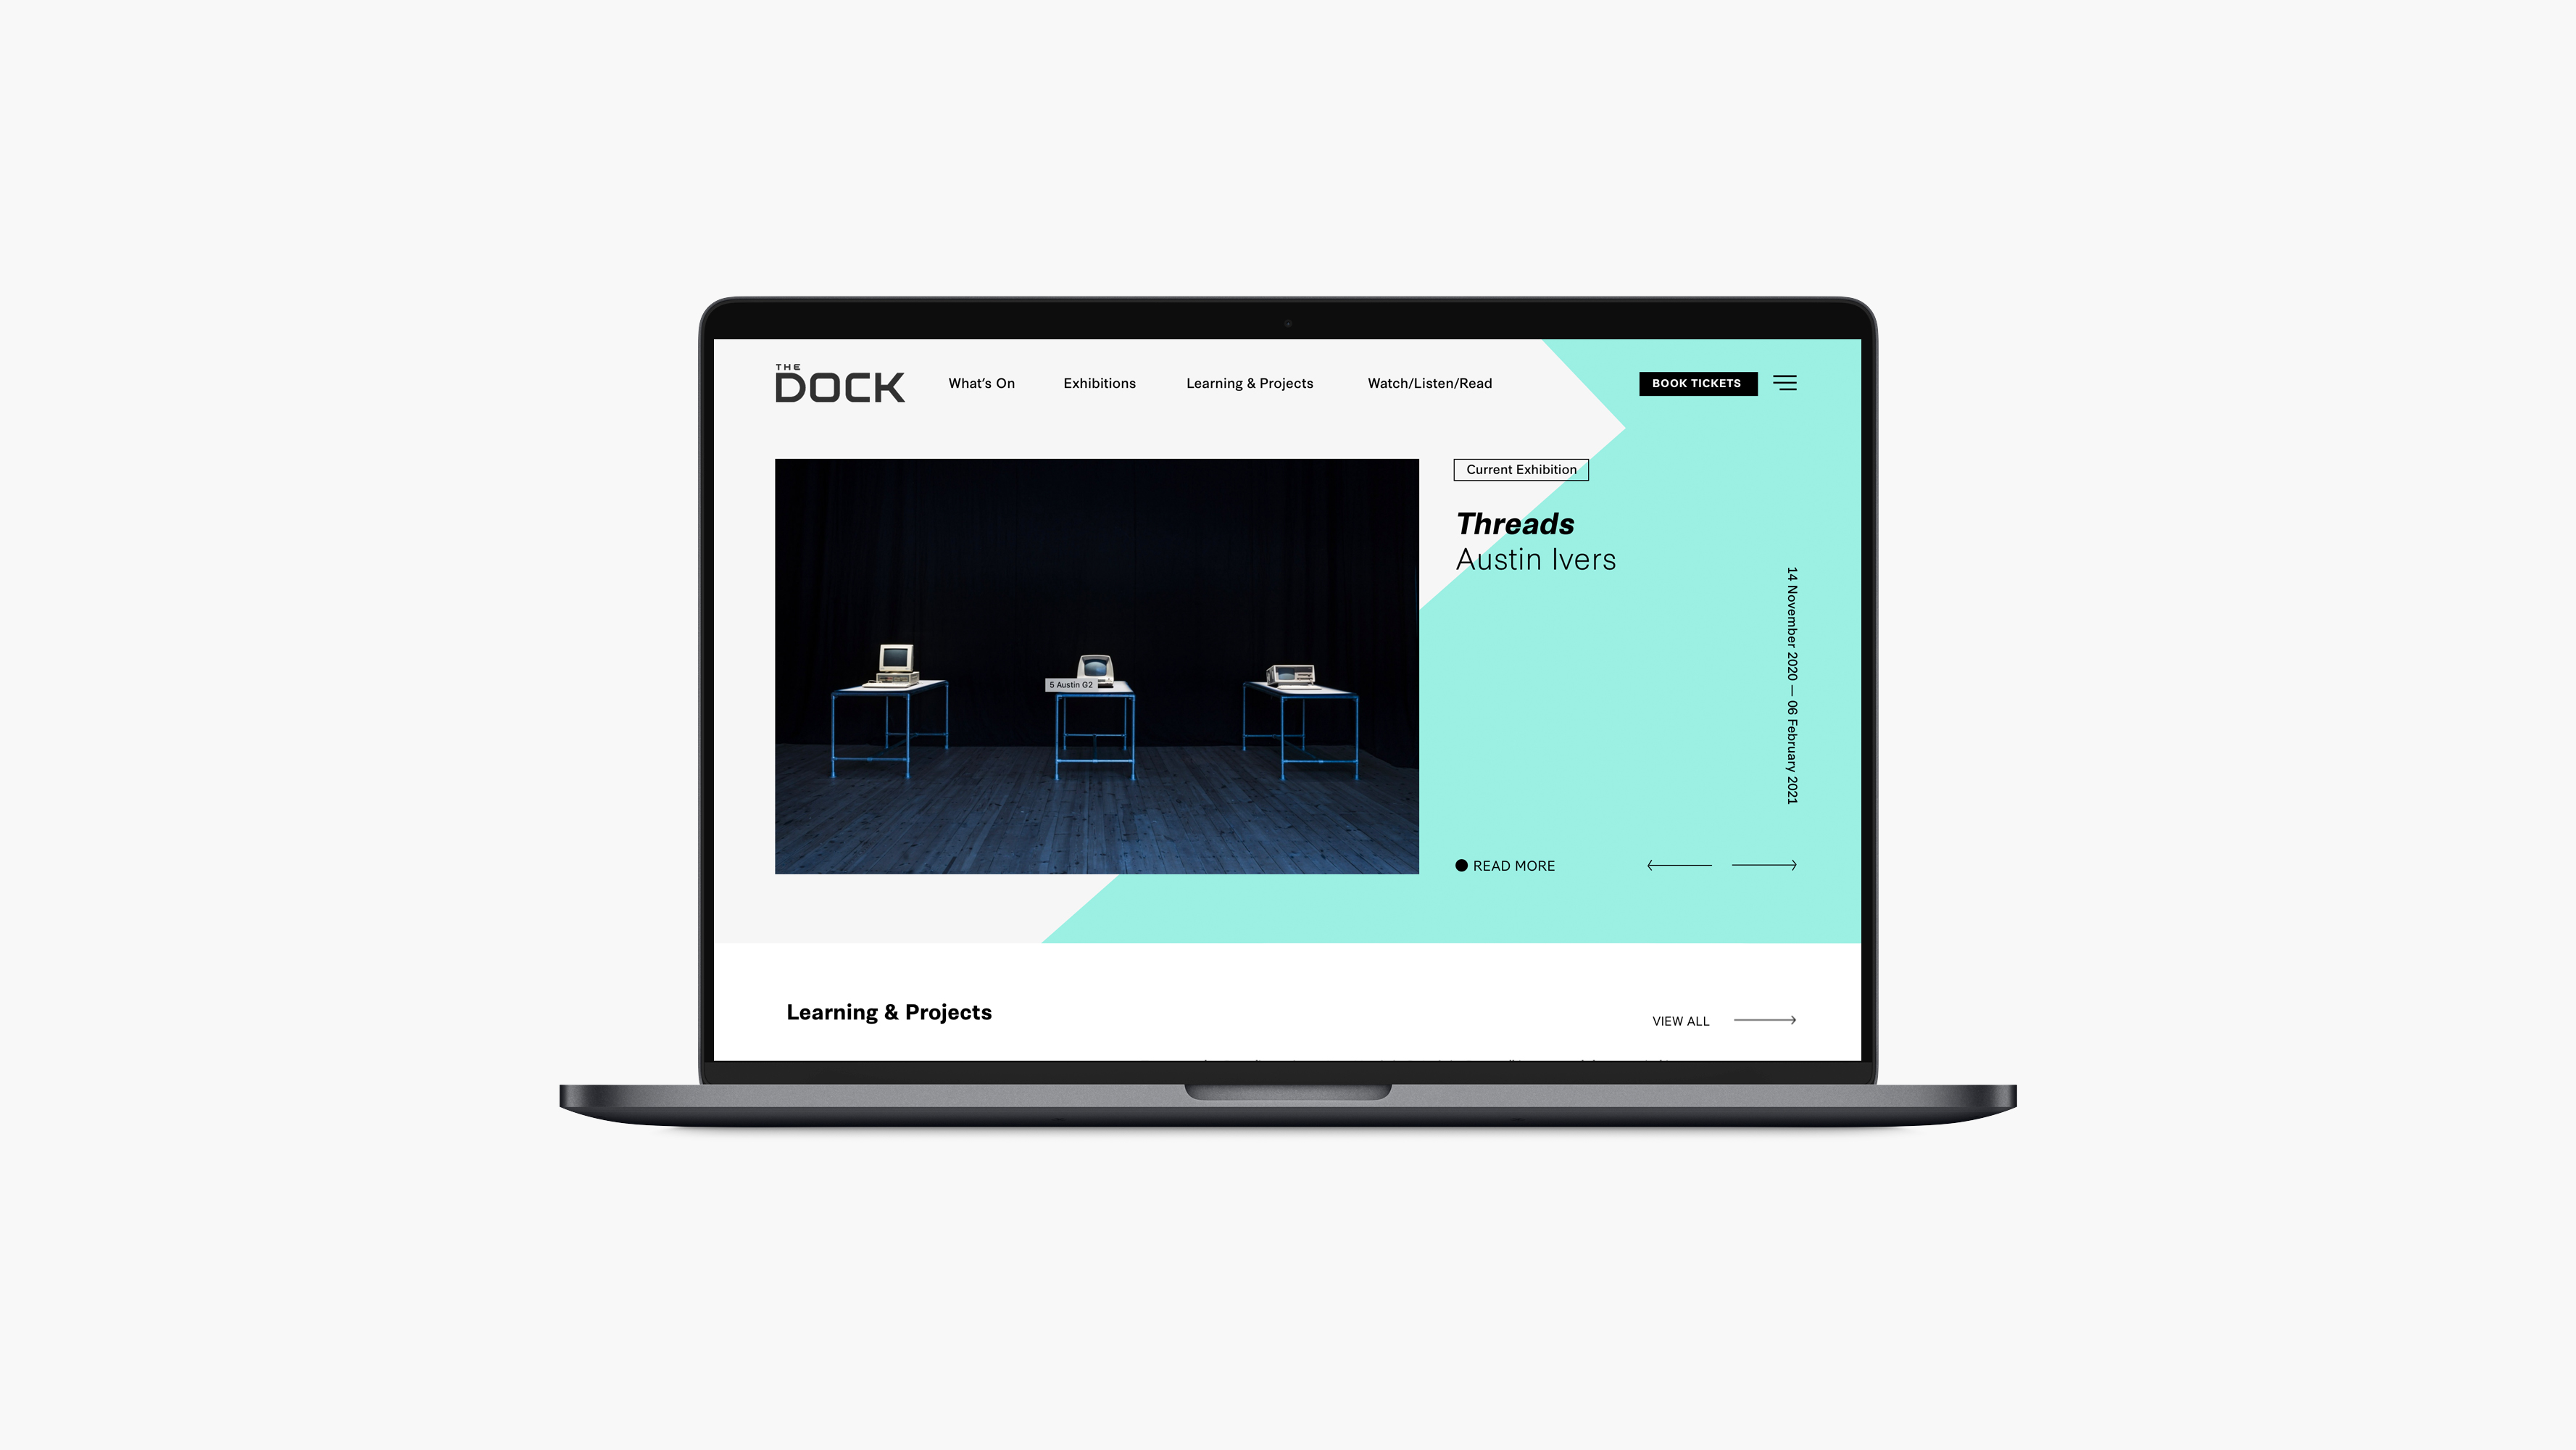 Cover image: The Dock